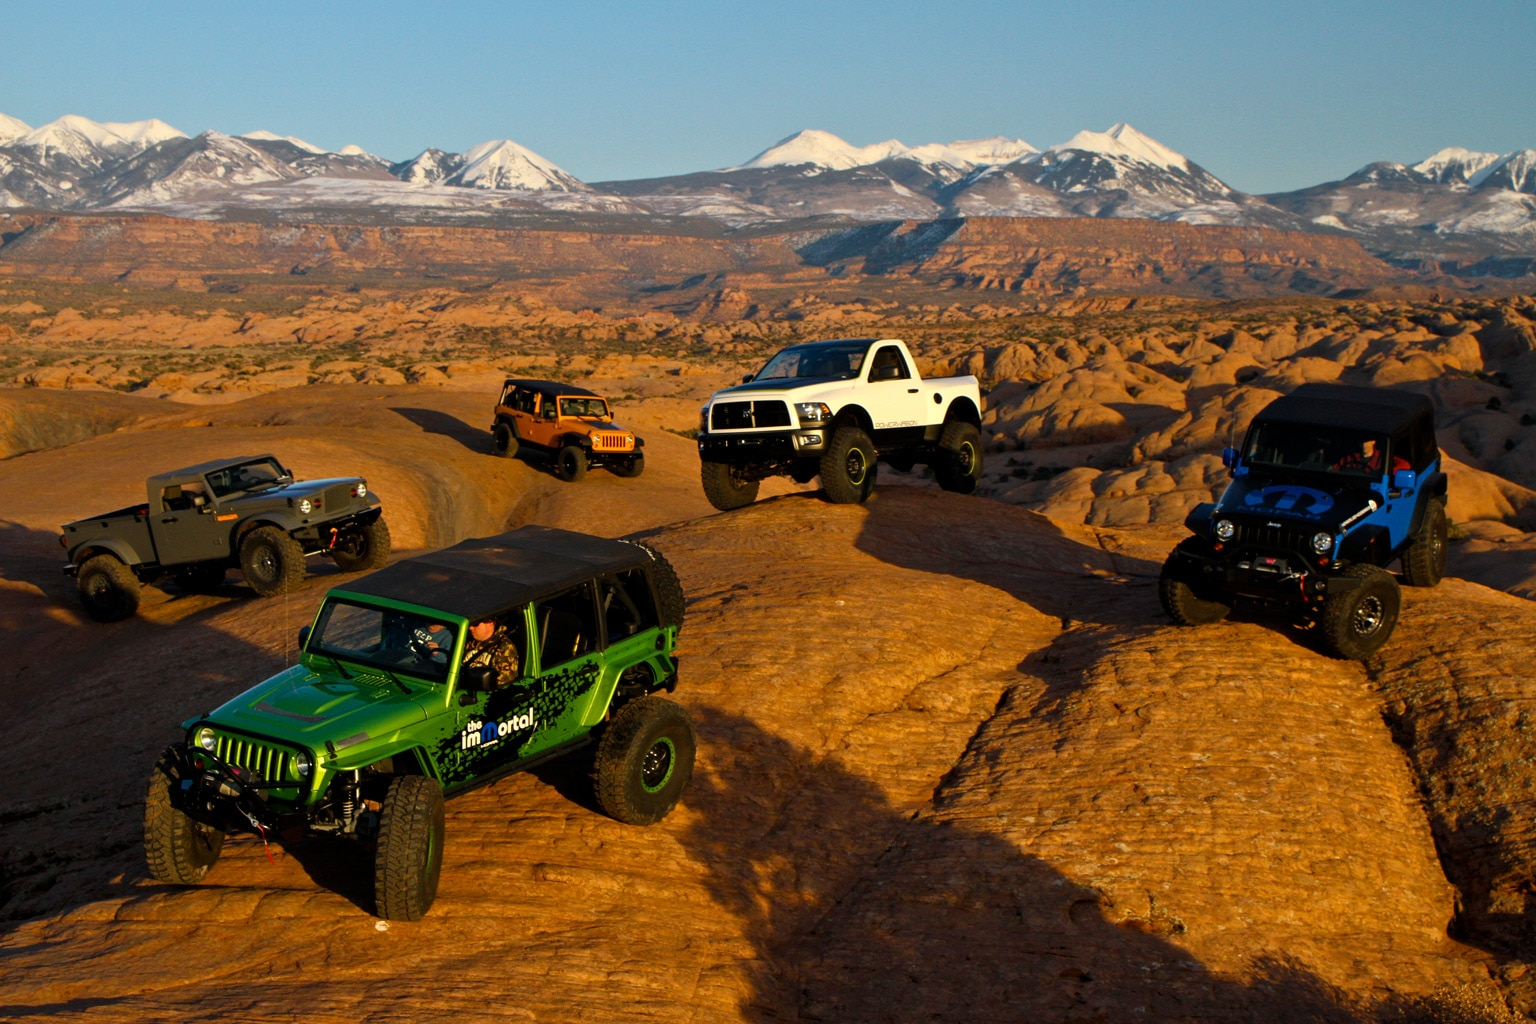 154 1003 01+2010 moab easter jeep safari+mopar underground group shot